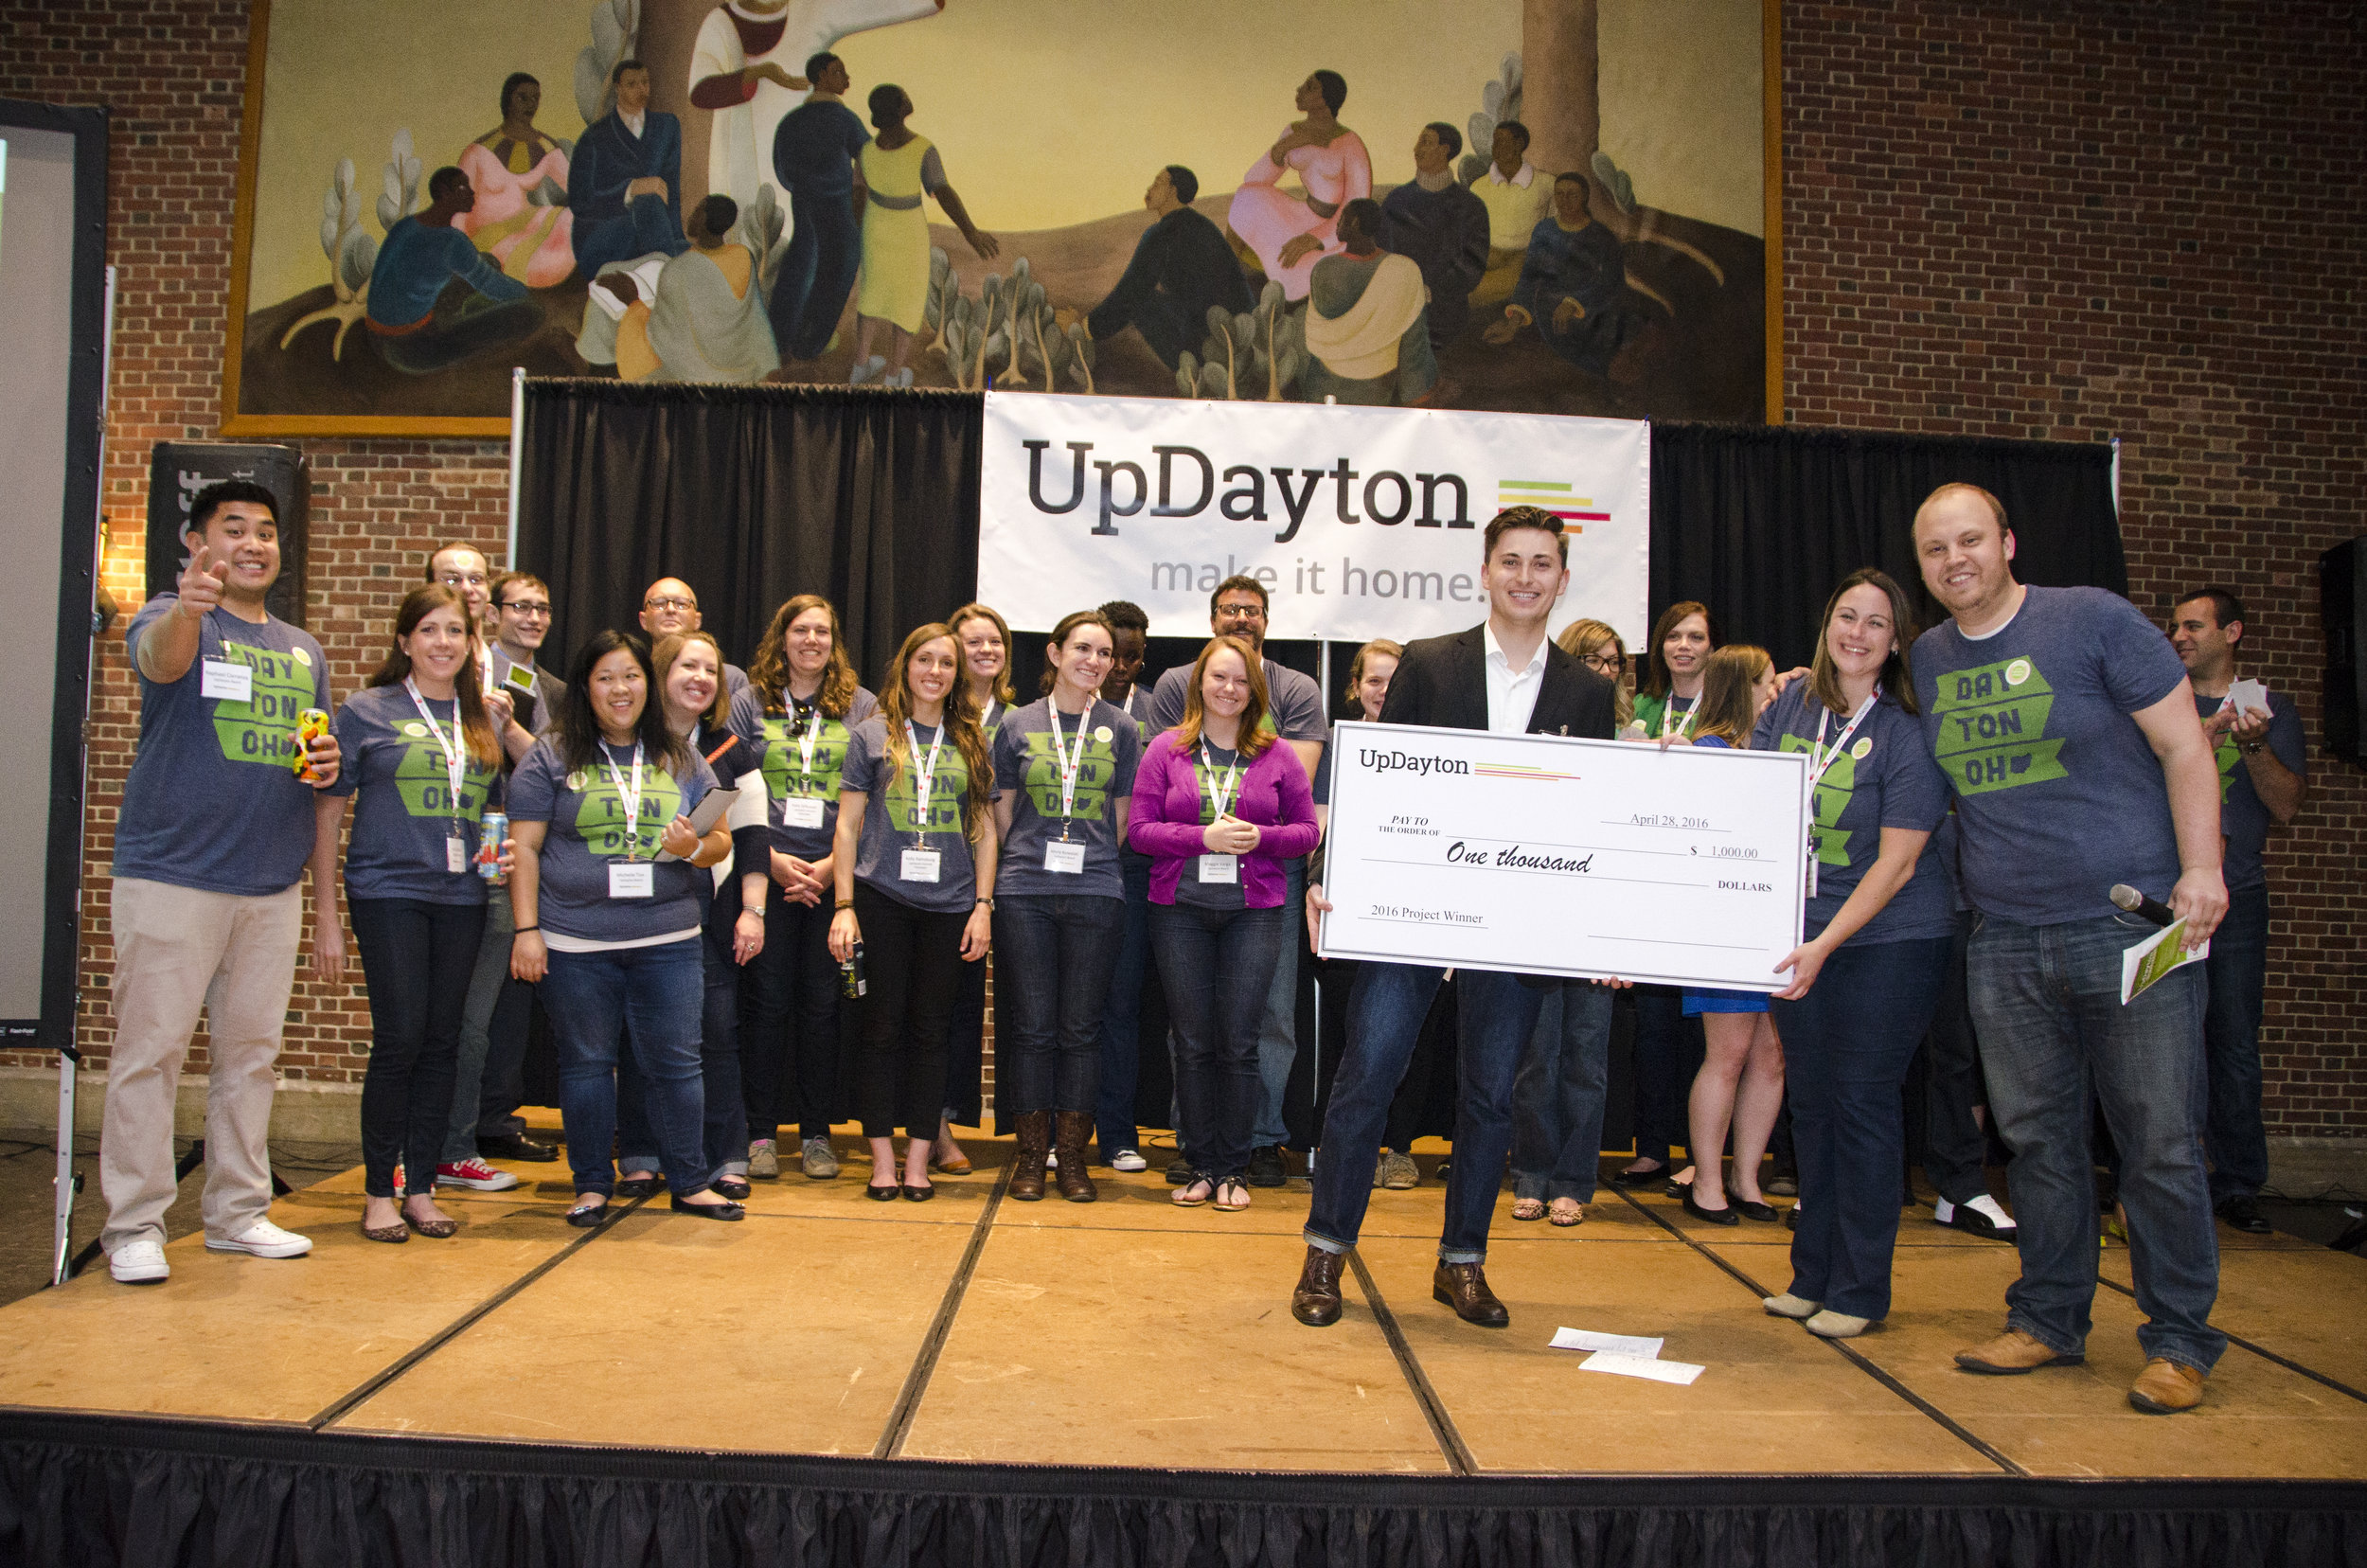 UpDayton_2016_Summit.jpg